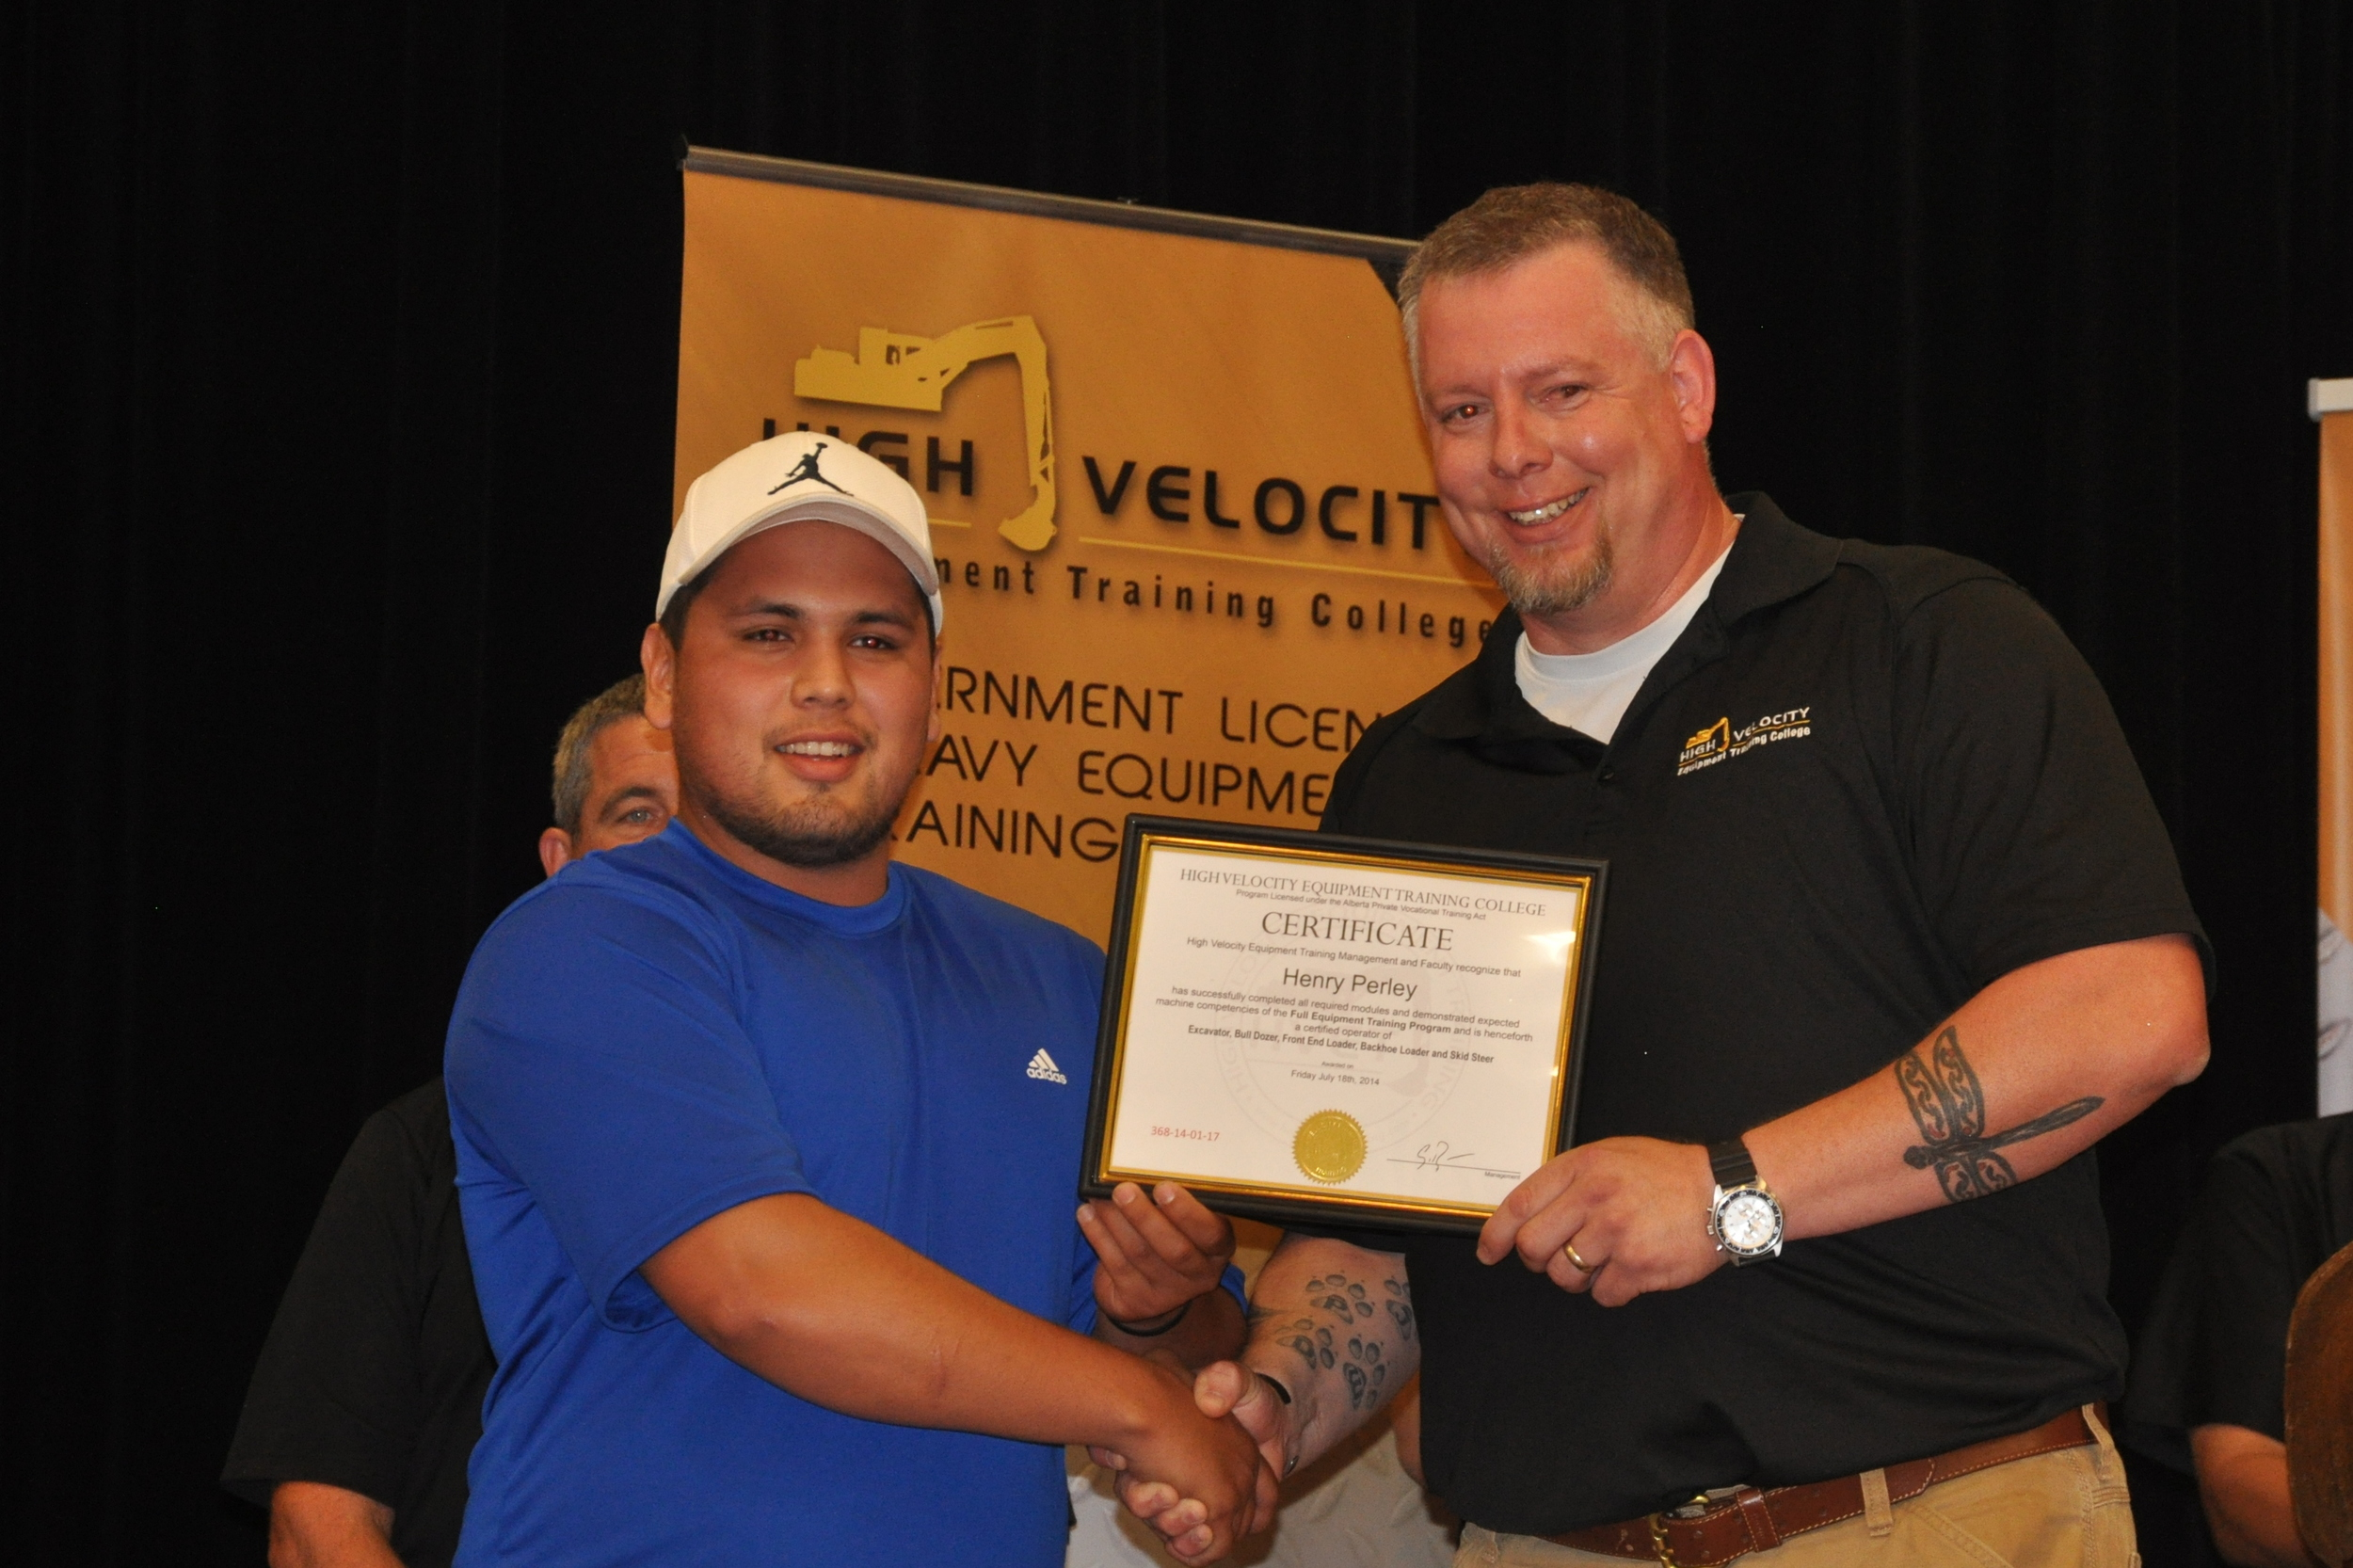 Henry Perley and John Deveau (Project Manager at HVET)